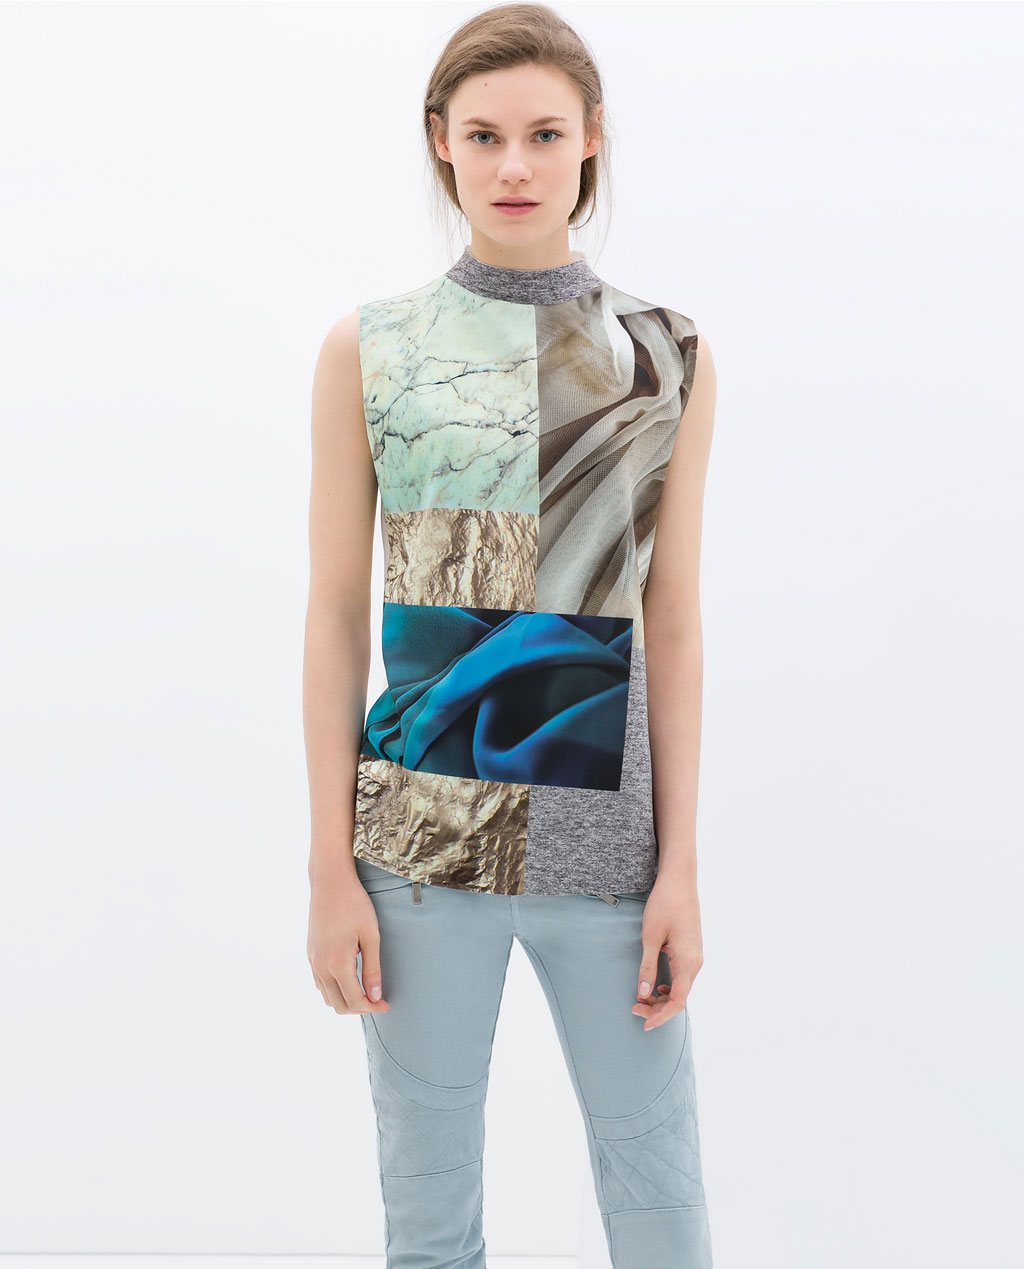 Zara Summer Spring T Shirts Collection For Women